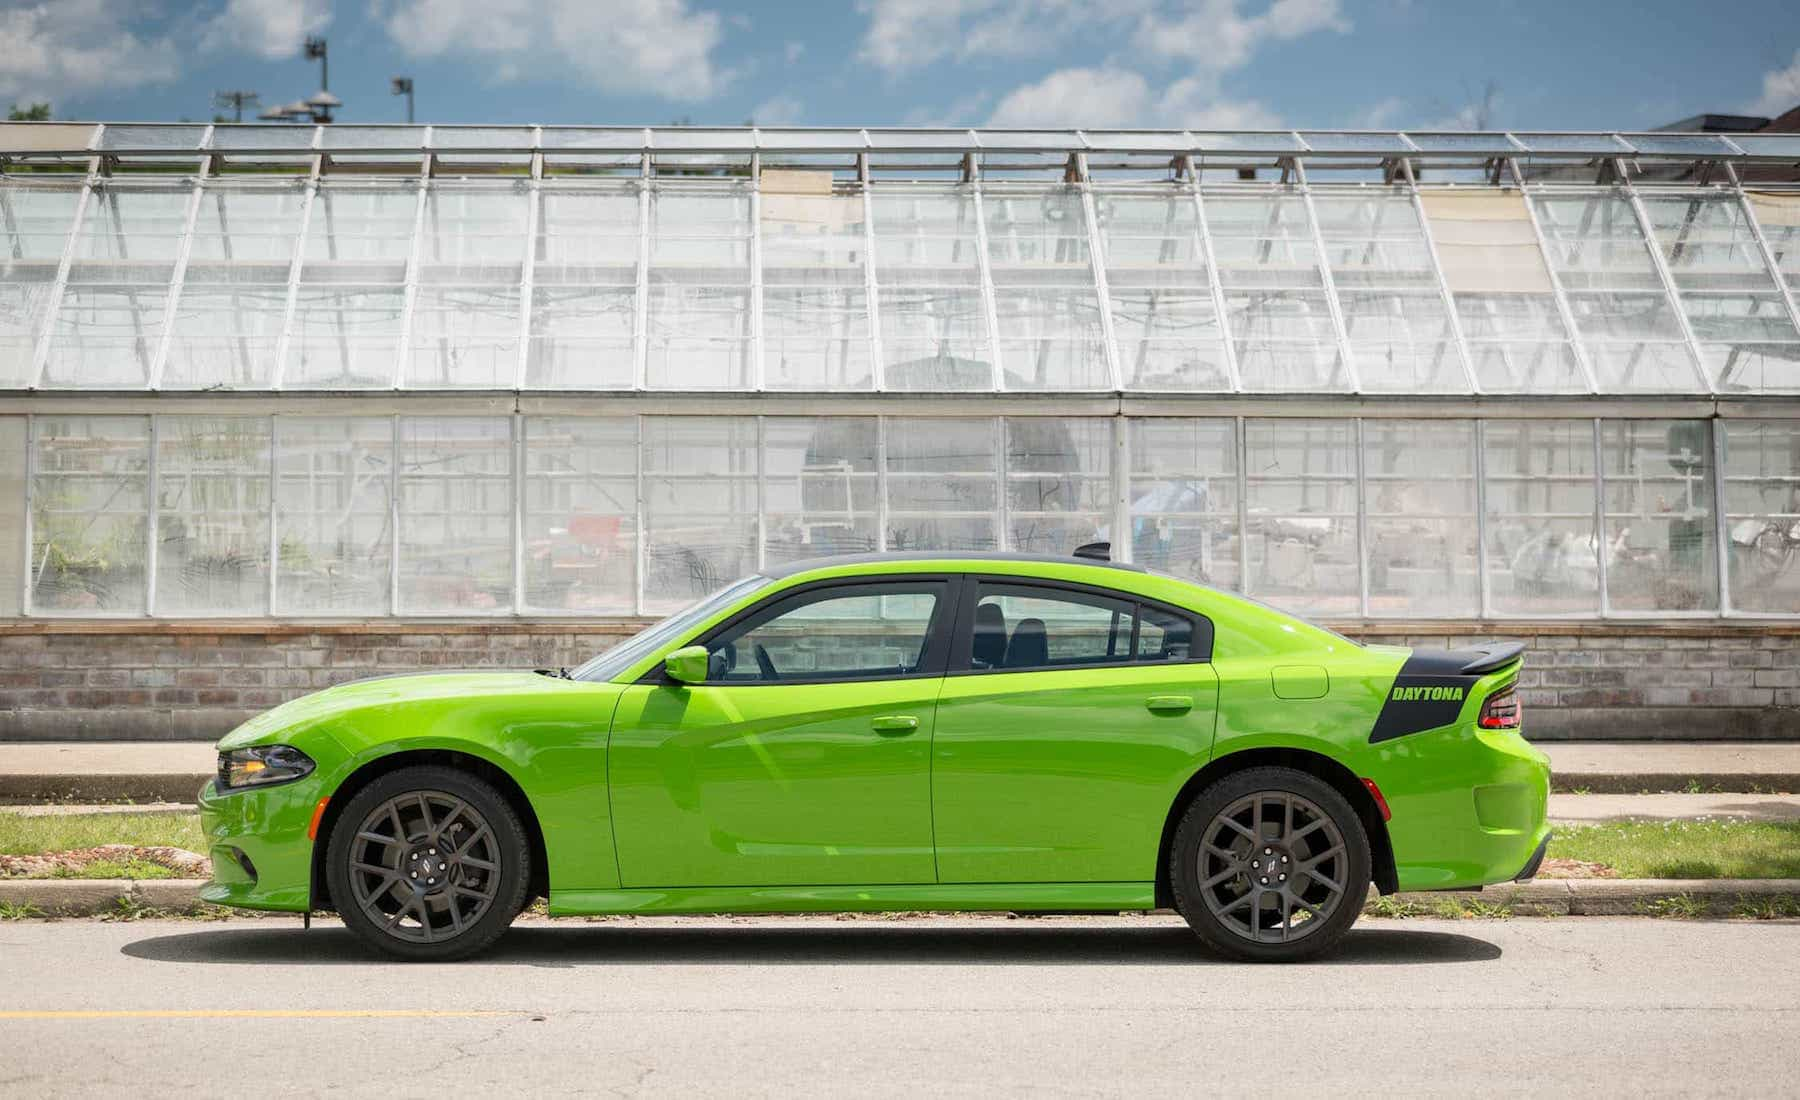 2017 Dodge Charger Daytona 5.7L V8 Exterior Side (Photo 36 of 38)